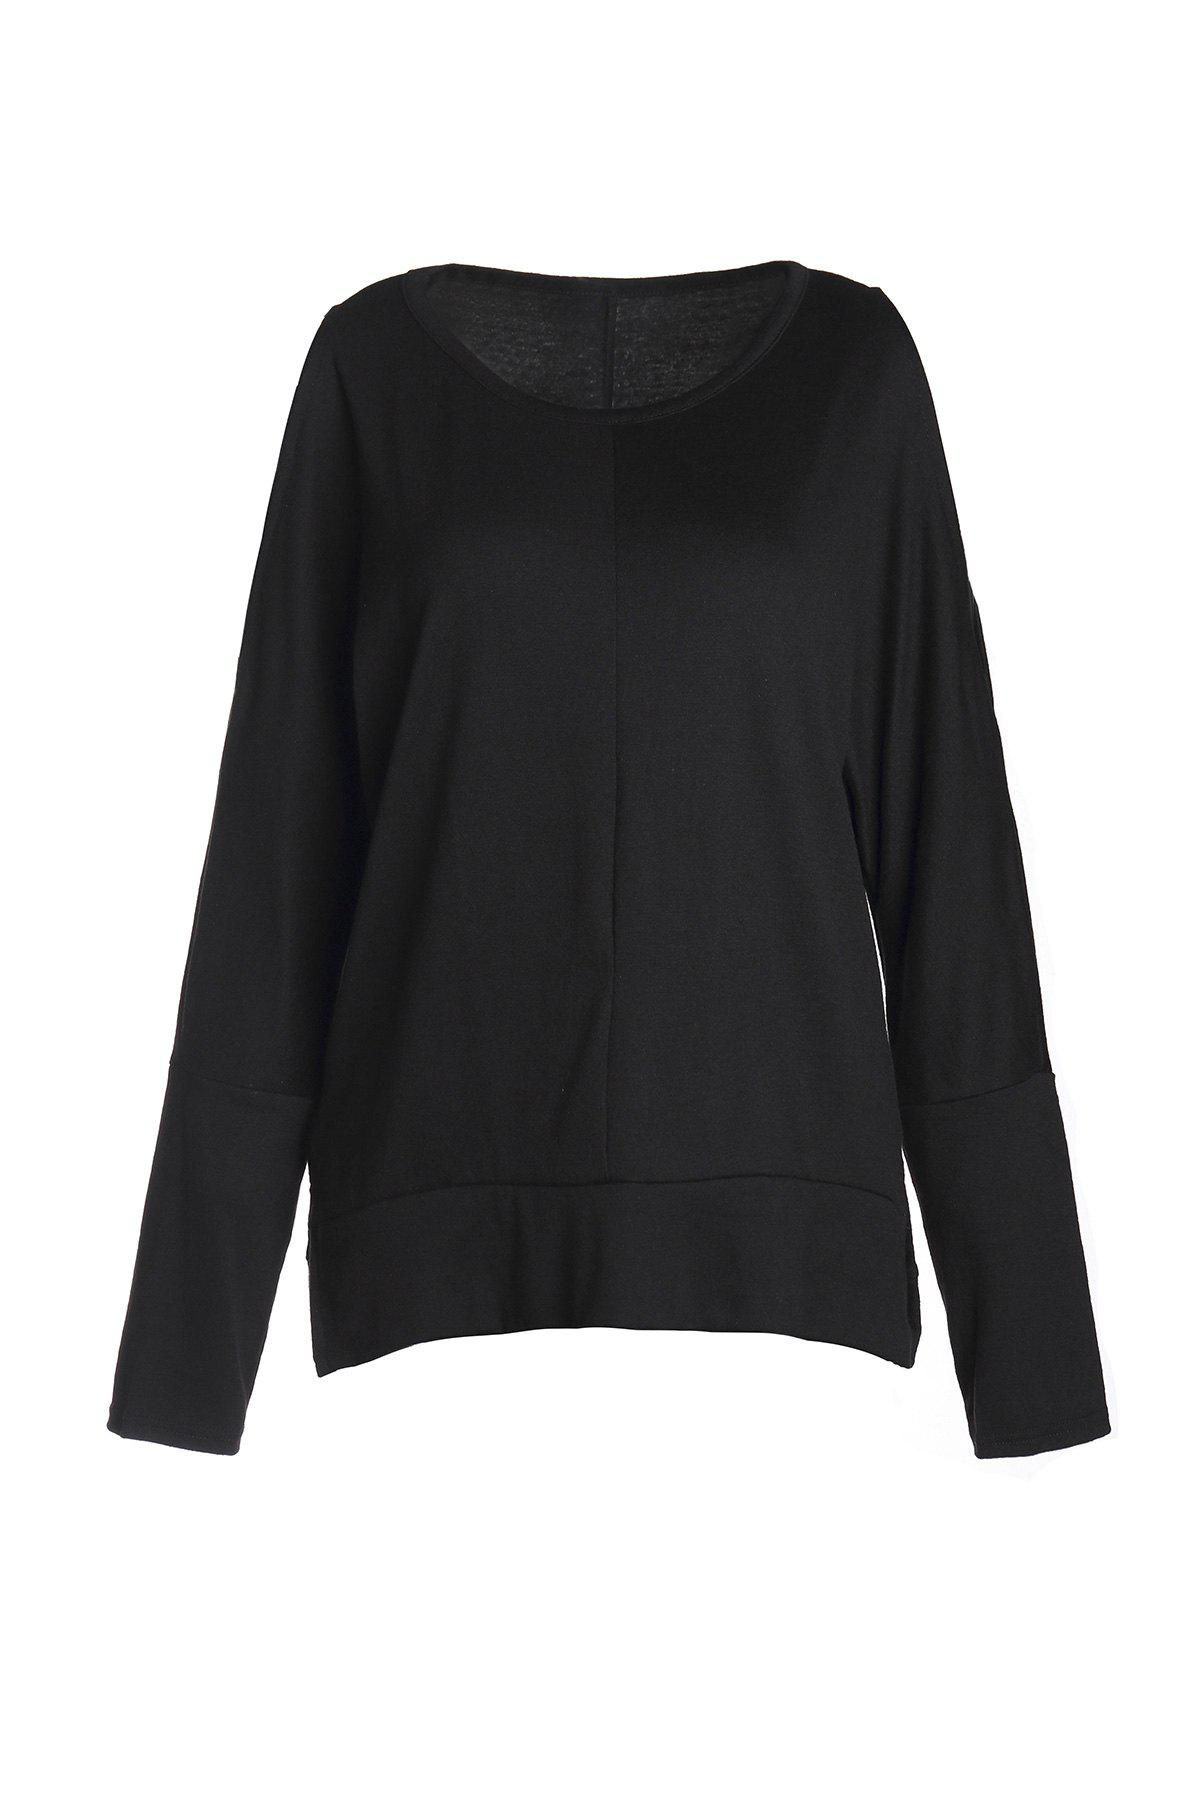 Stylish Women's Scoop Neck Long Sleeve Side Slit Hollow Out T-Shirt - BLACK S